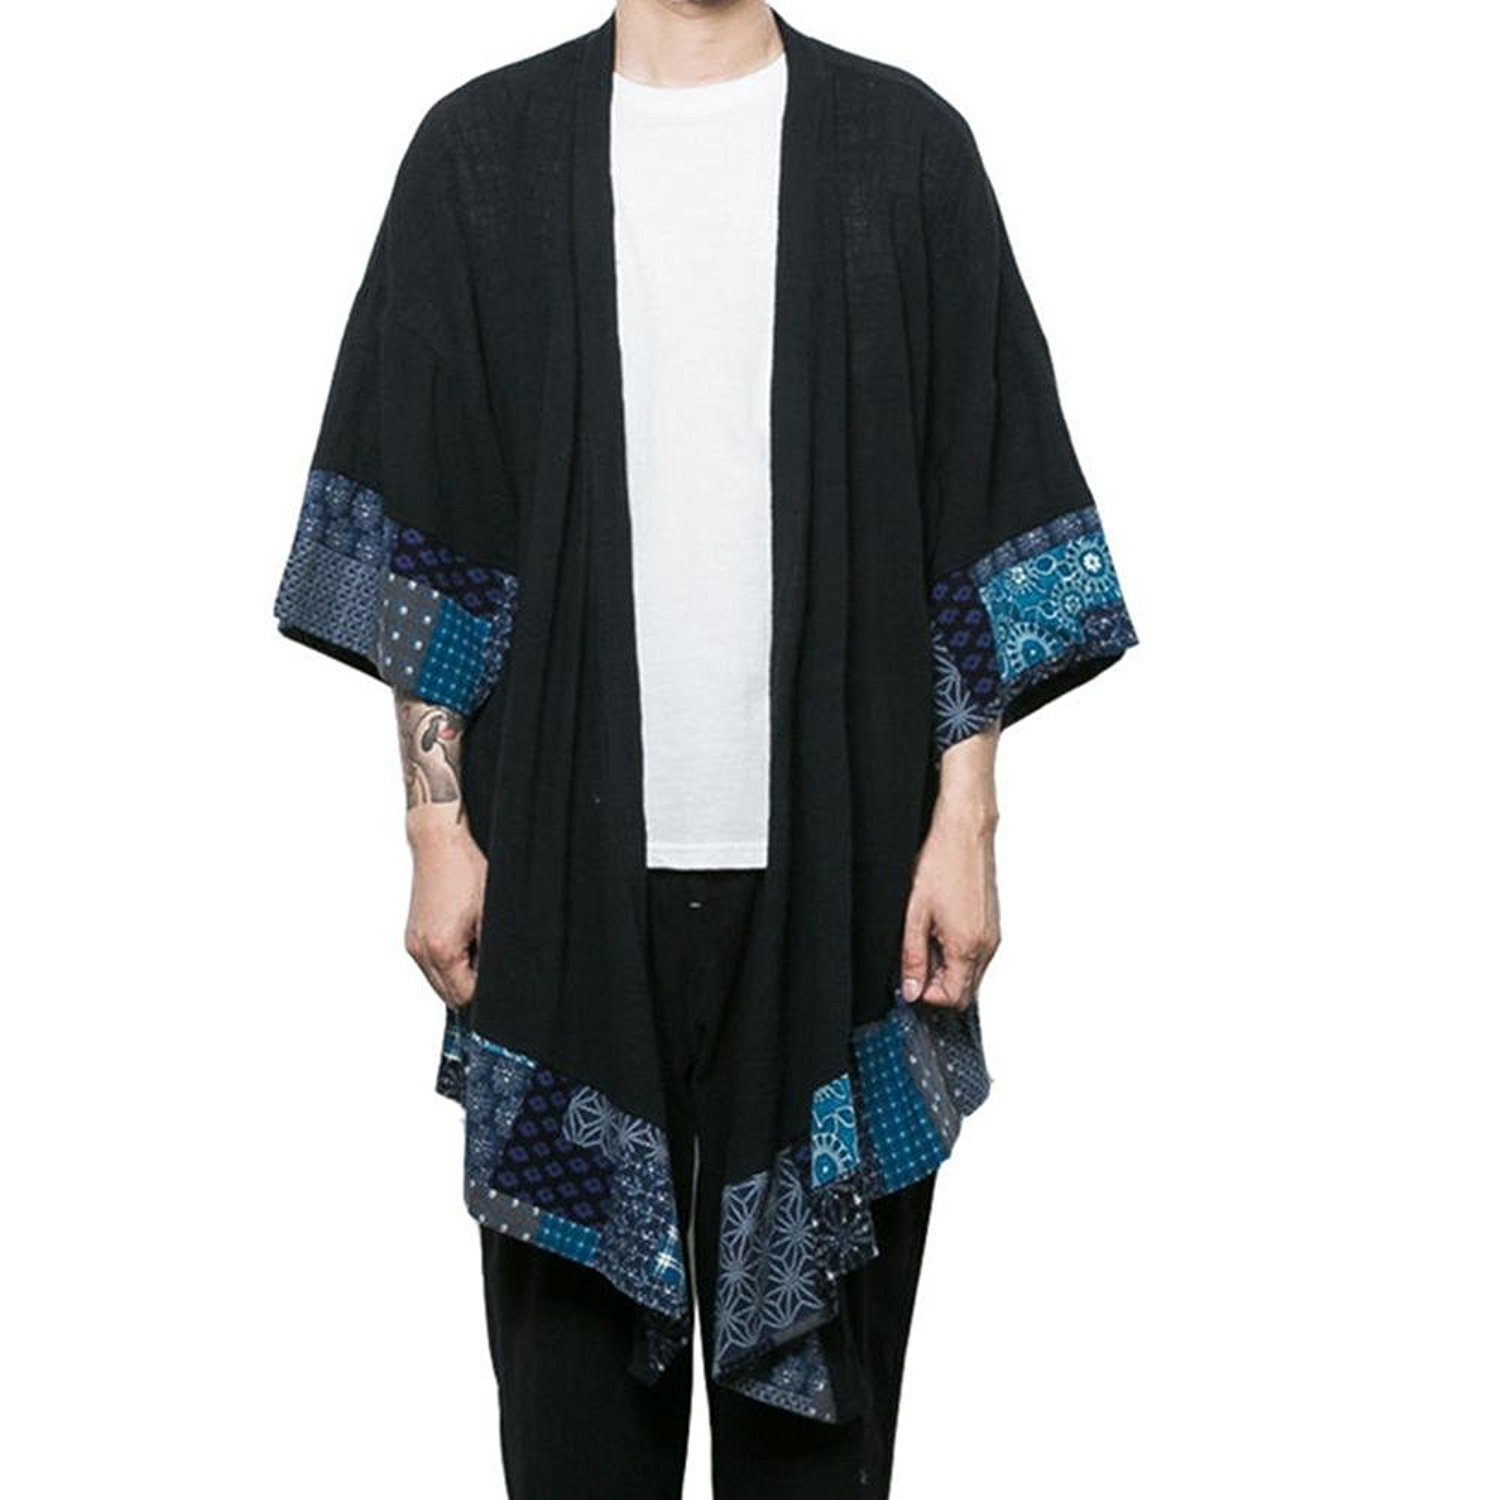 JINIDU Men's Cardigan Lightweight Cotton Kimono Style Cloak Open Front Cape by JINIDU